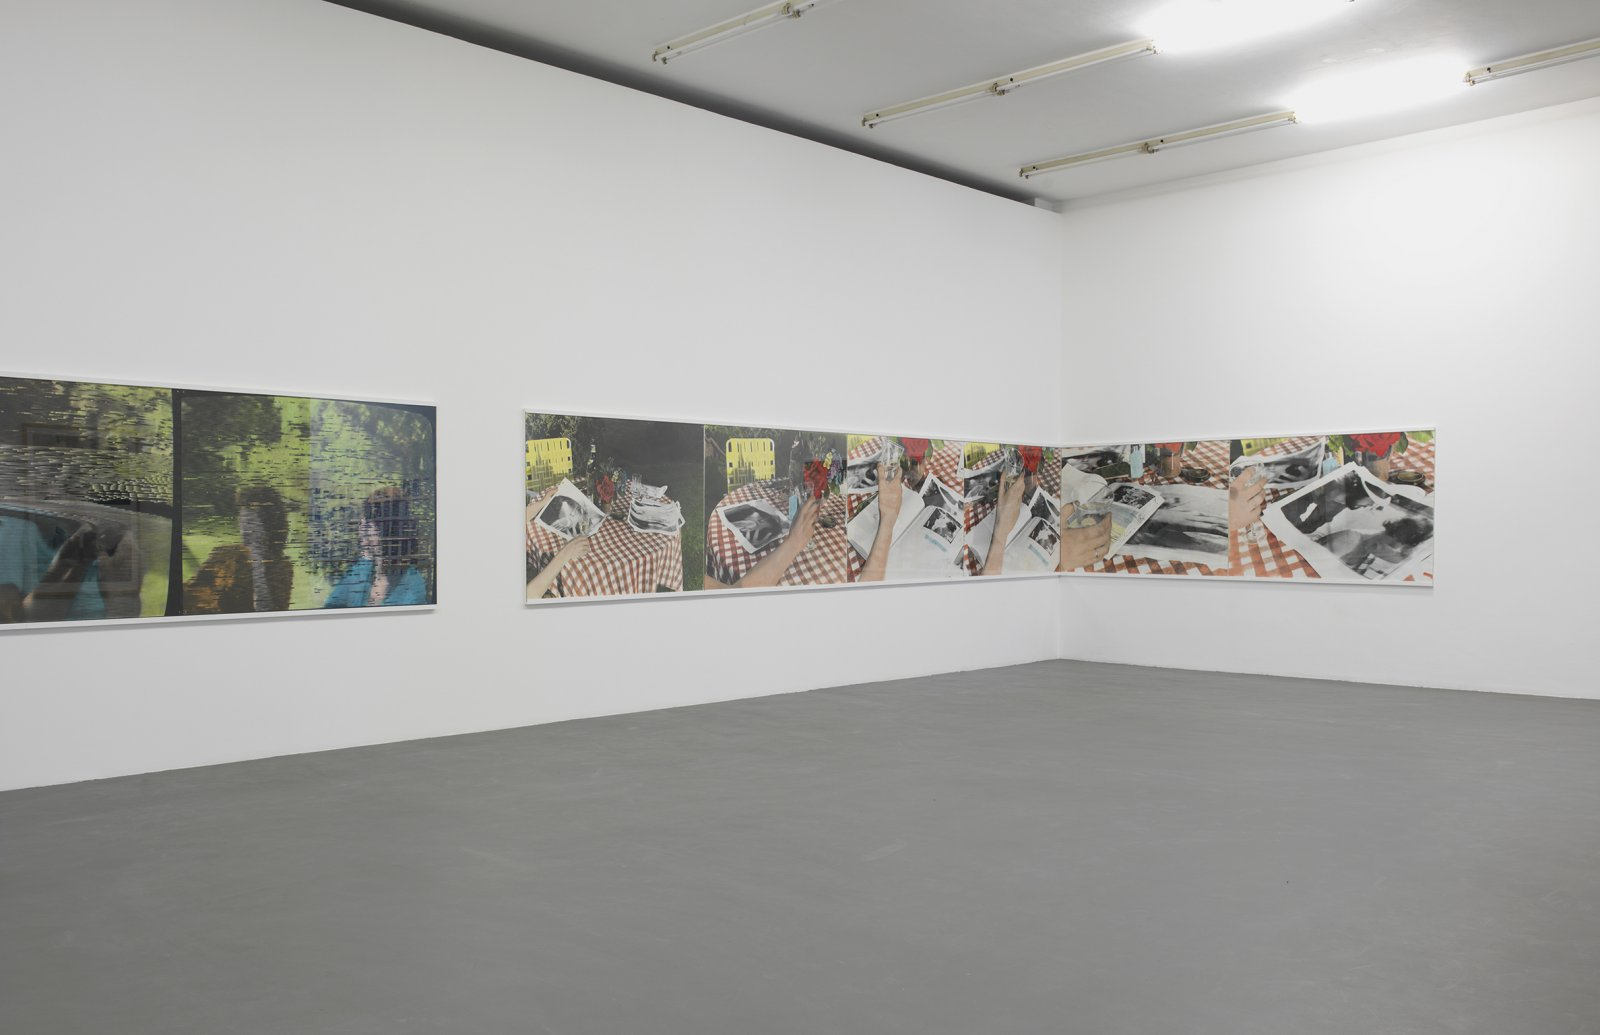 ​​​​​​​Ian Wallace, The Summer Script I & II, 1974, silver prints, oil, plexiglas on paper, 12 panels, each 47 x 69 in. (119 x 176 cm). Installation view, ​A Literature of Images​, Witte de With, Rotterdam, 2008​​​​​​​​​​​​ by Ian Wallace